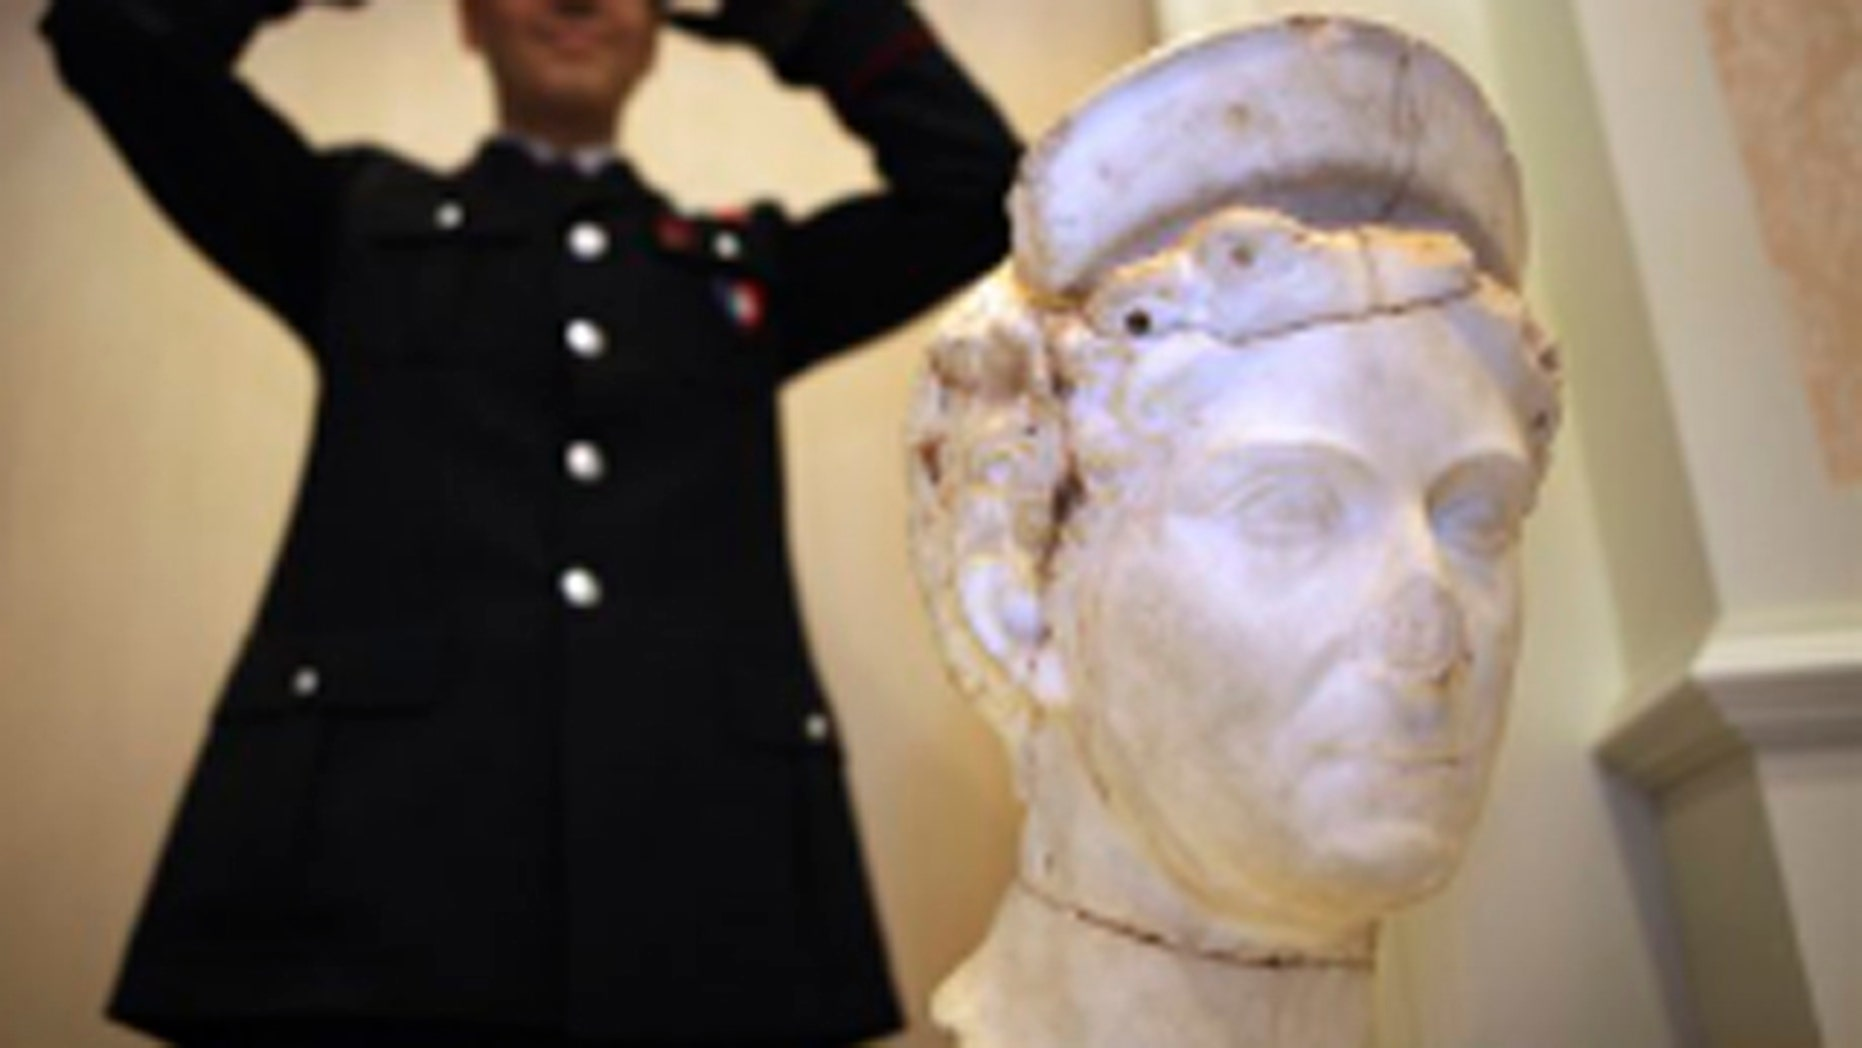 Jan. 21, 2012: An artifact returned by Italy to Libya, known as the Head Domitilla, which was stolen from Sabratha, Libya in 1990, is seen on display during Italian Prime Minister Mario Monti's visit to Tripoli, Libya.